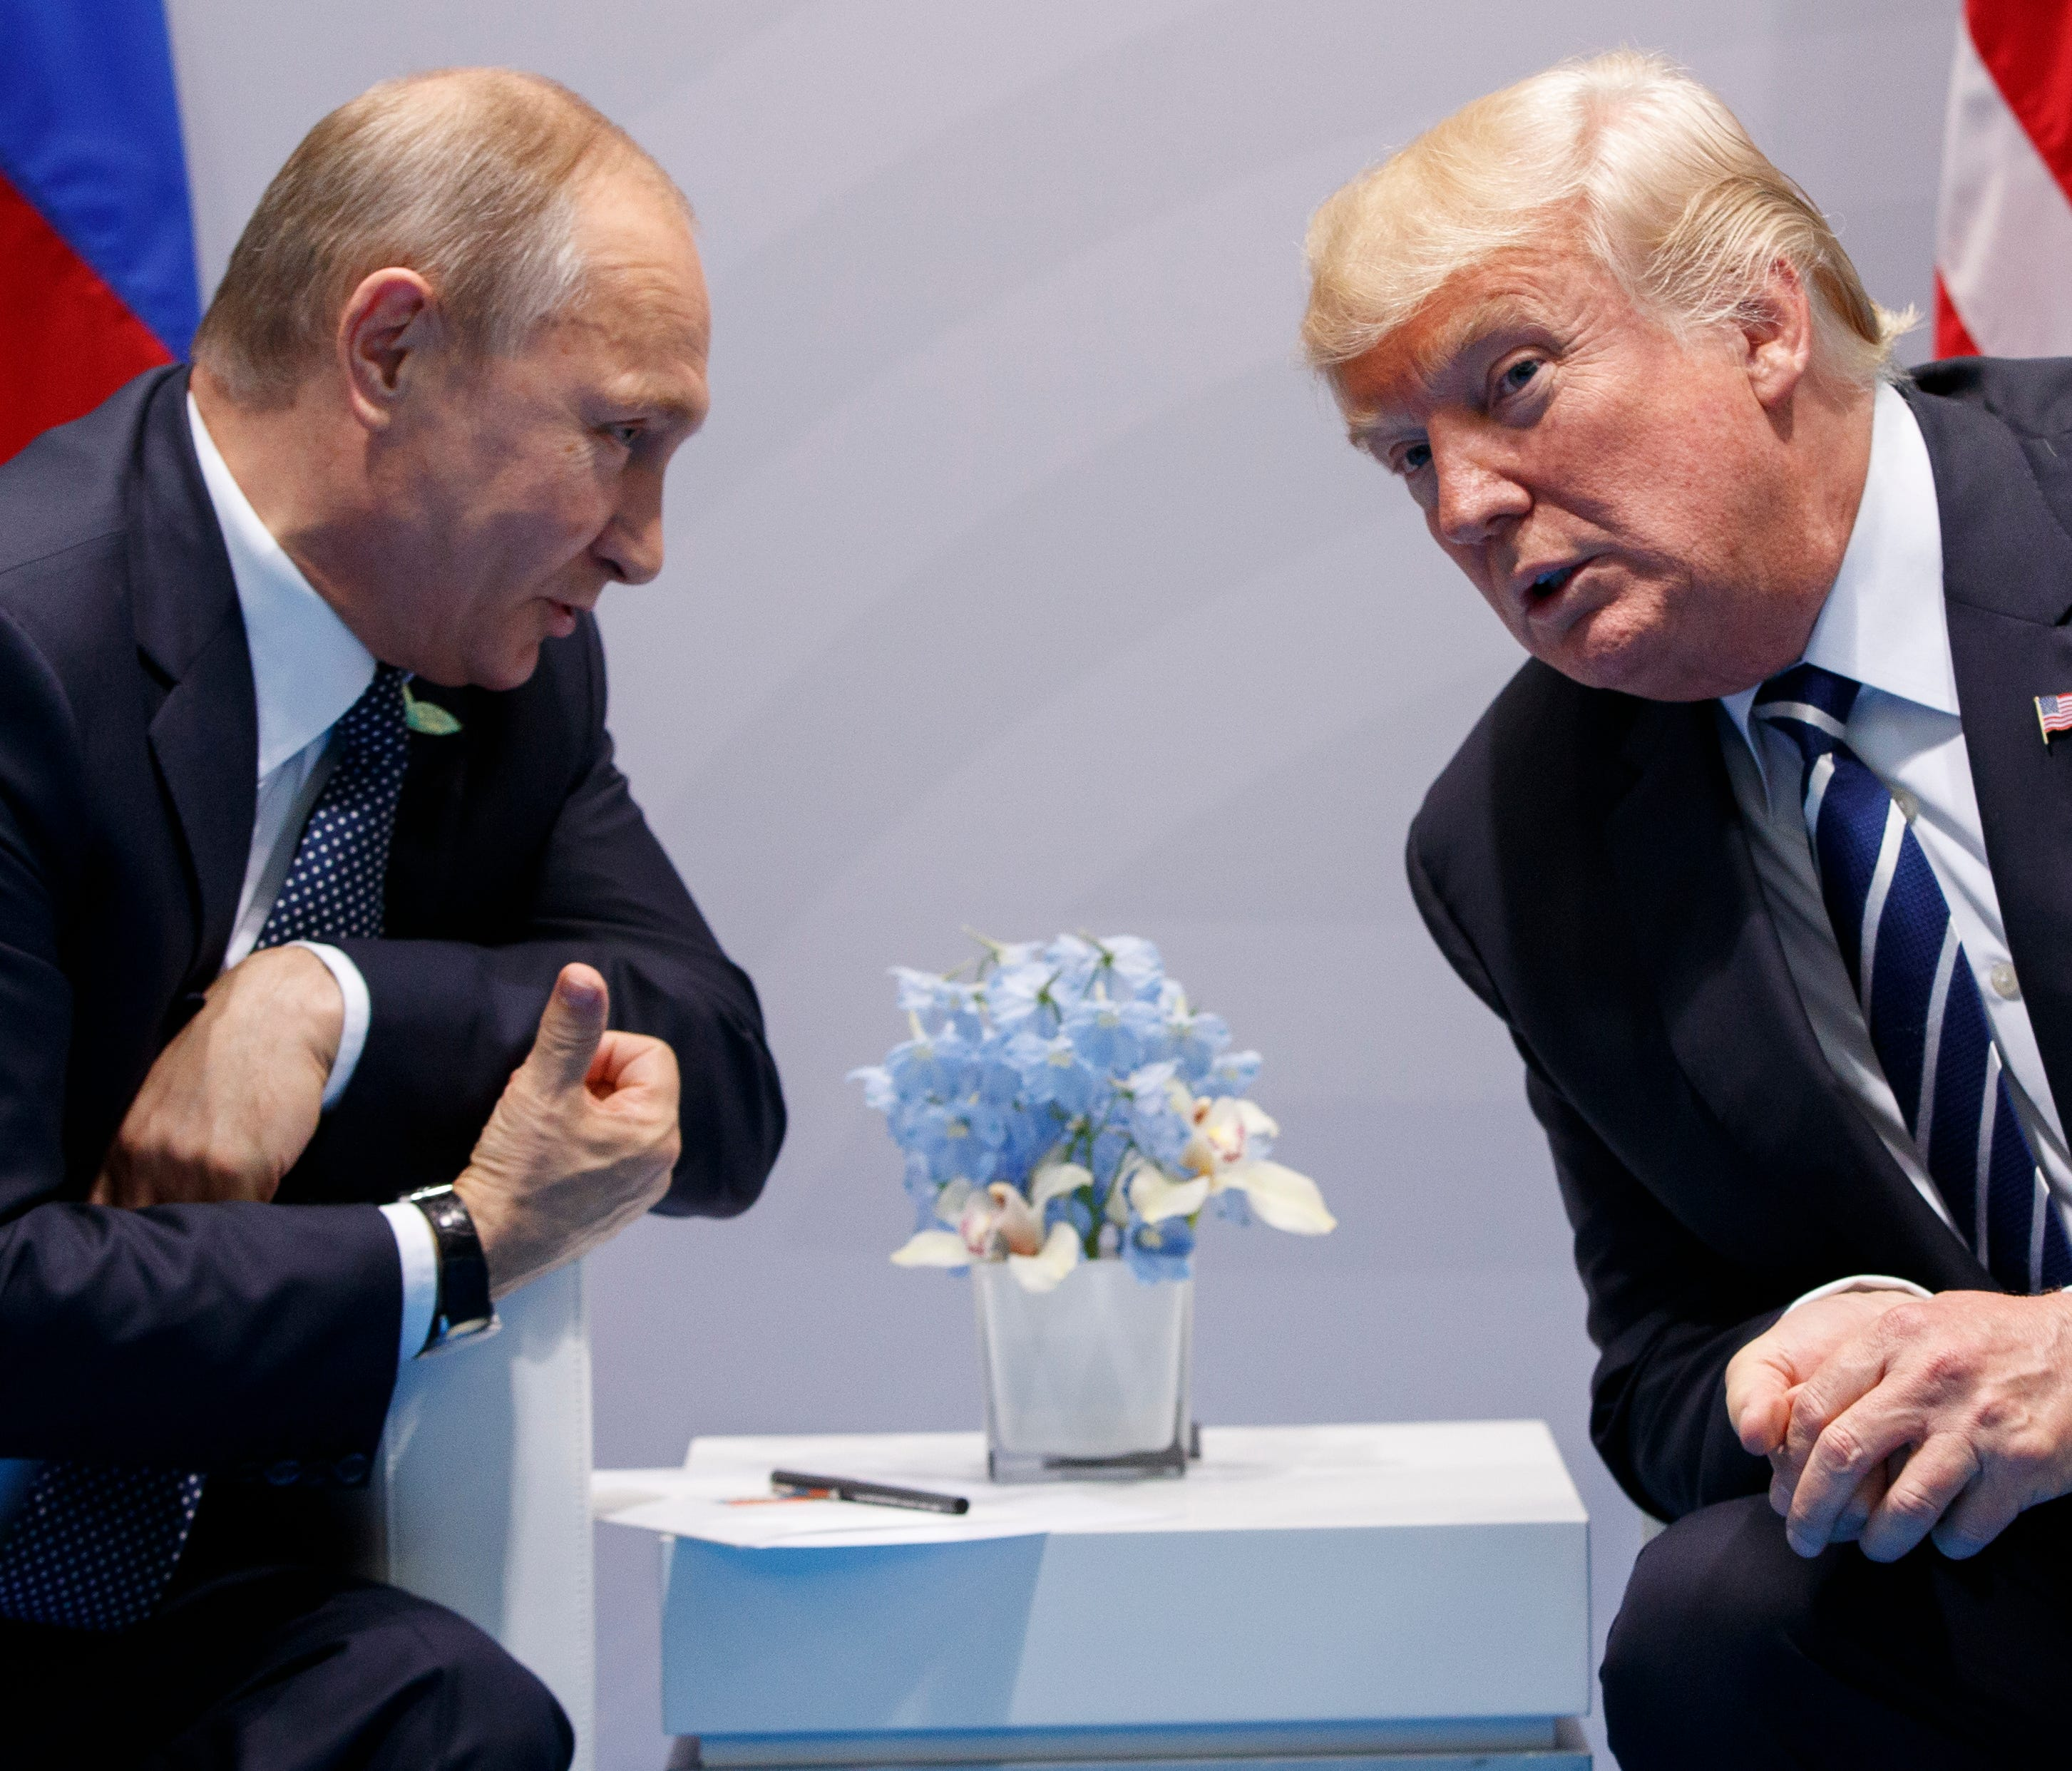 In this July 7, 2017, file photo, President Trump meets with Russian President Vladimir Putin at the G20 Summit in Hamburg, Germany.